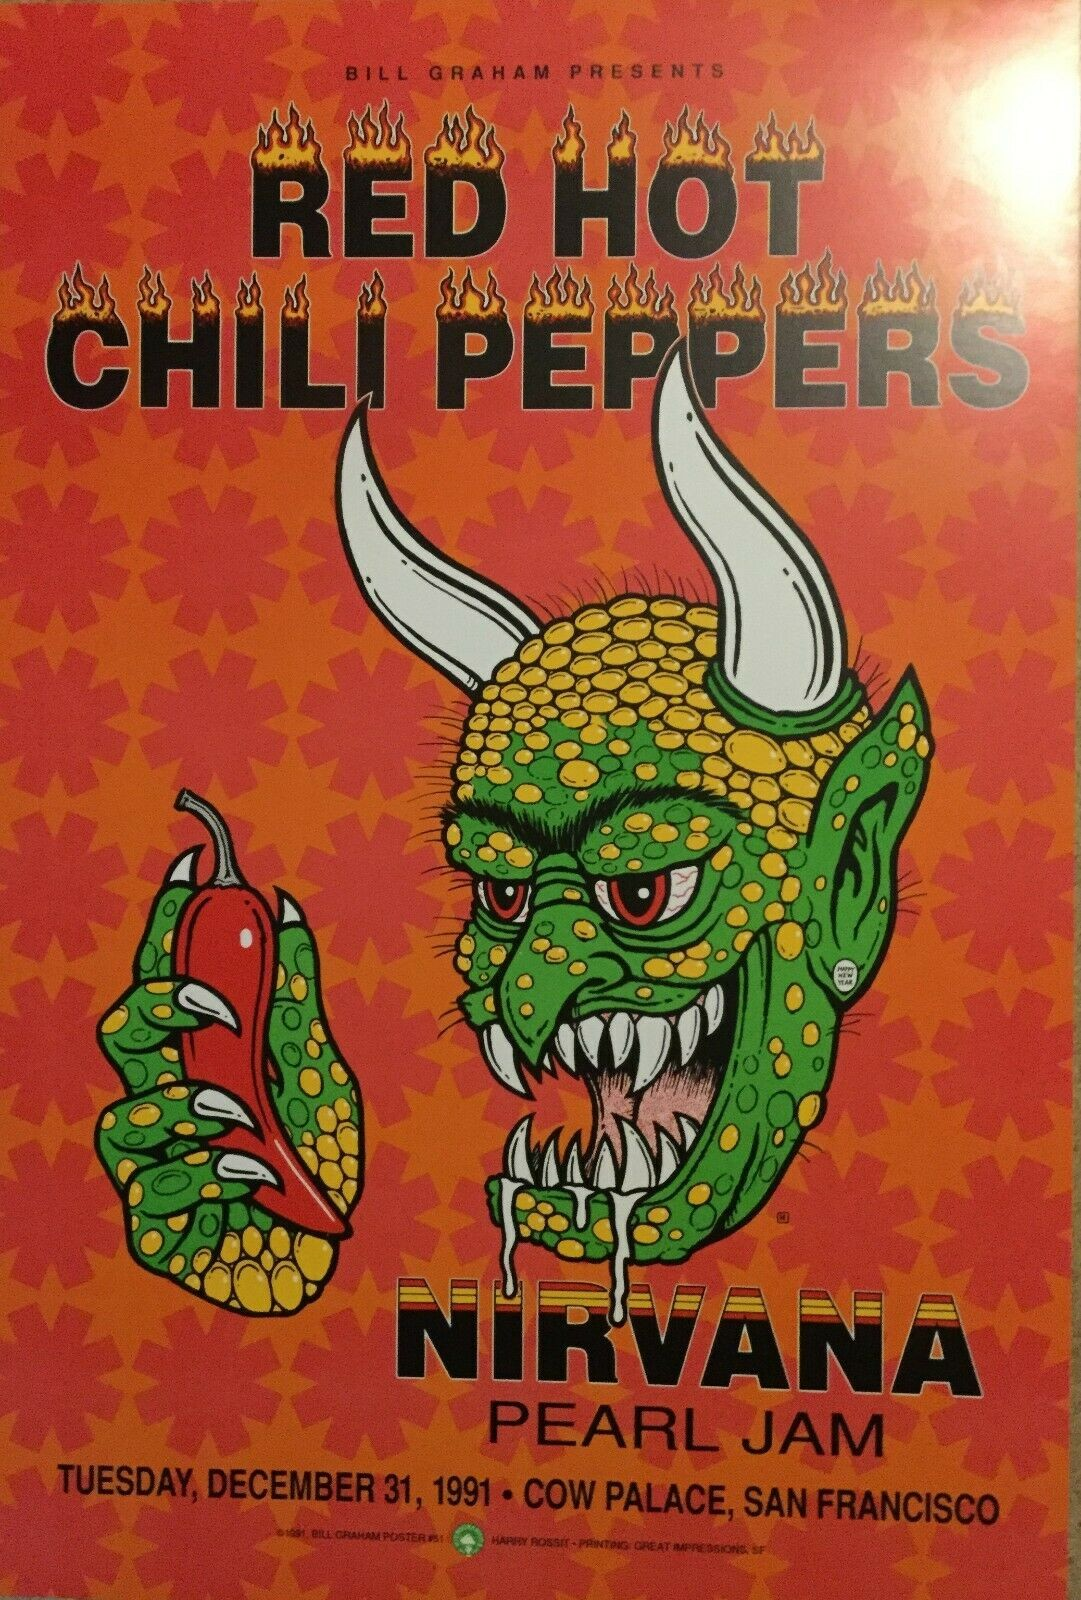 Bill Graham Red Hot Chili Peppers, Nirvana and Pearl Jam poster